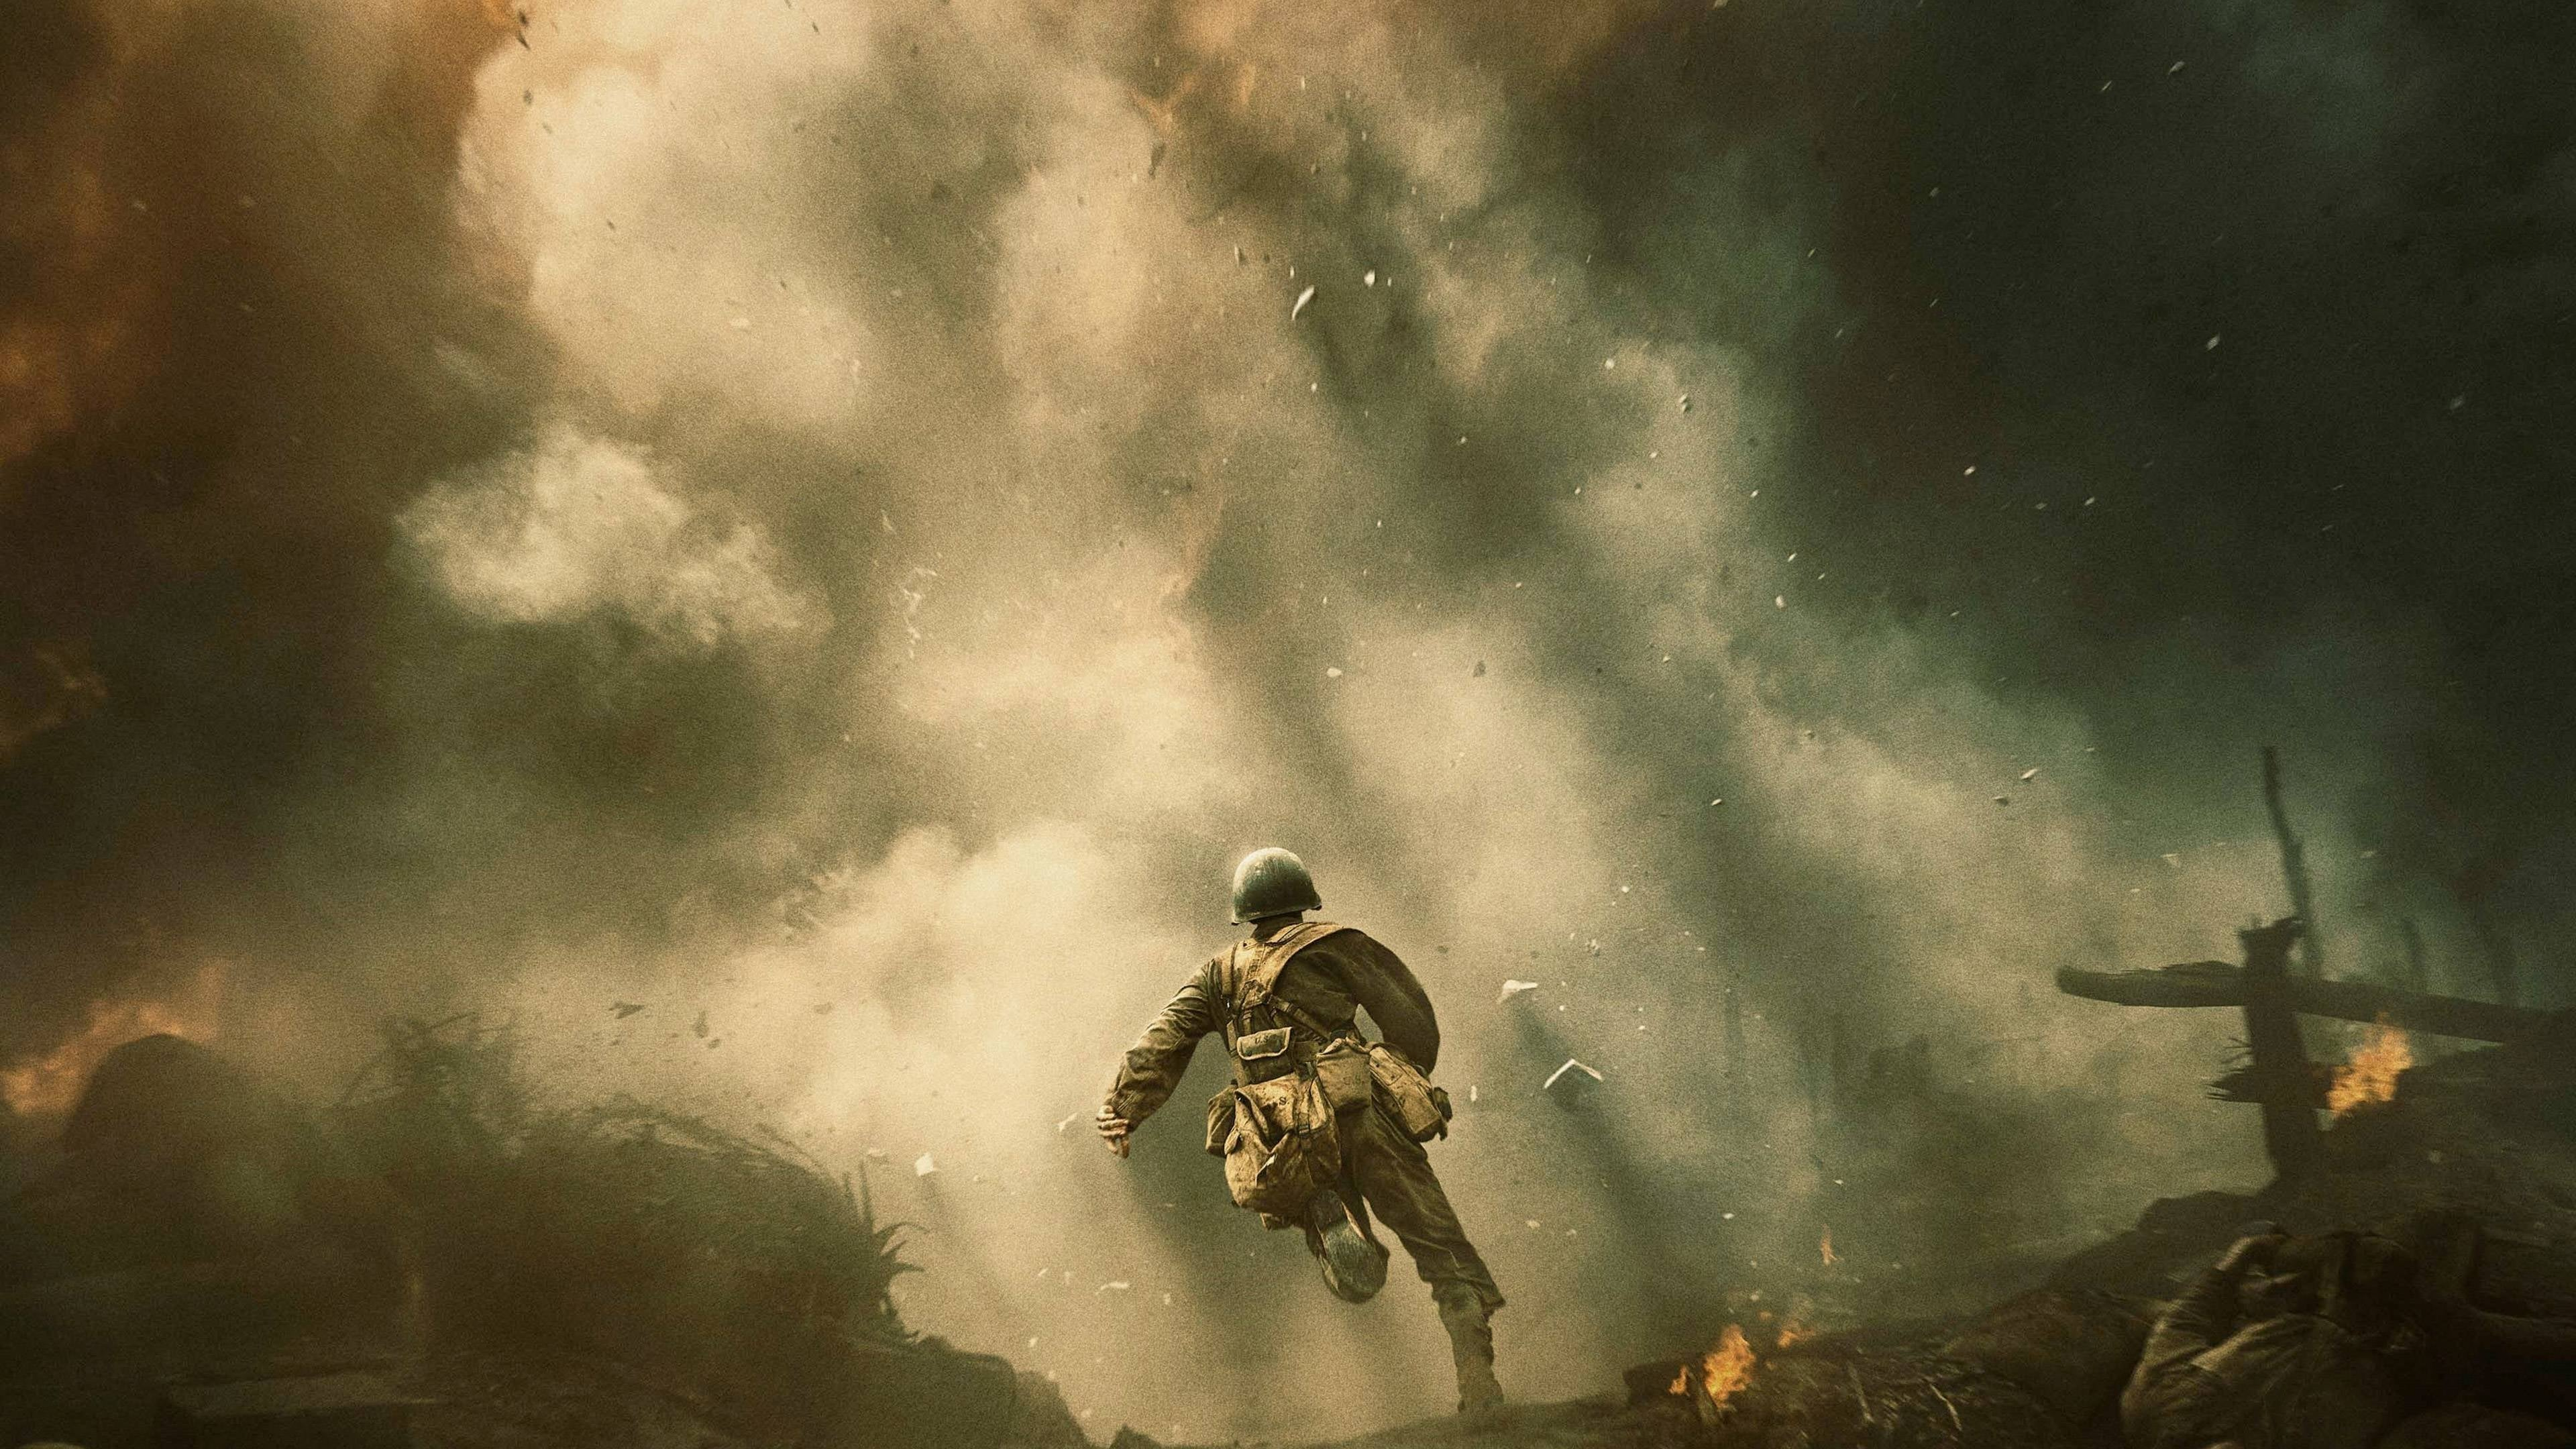 Hacksaw Ridge (2016) 720p BrRip x264 - YIFY